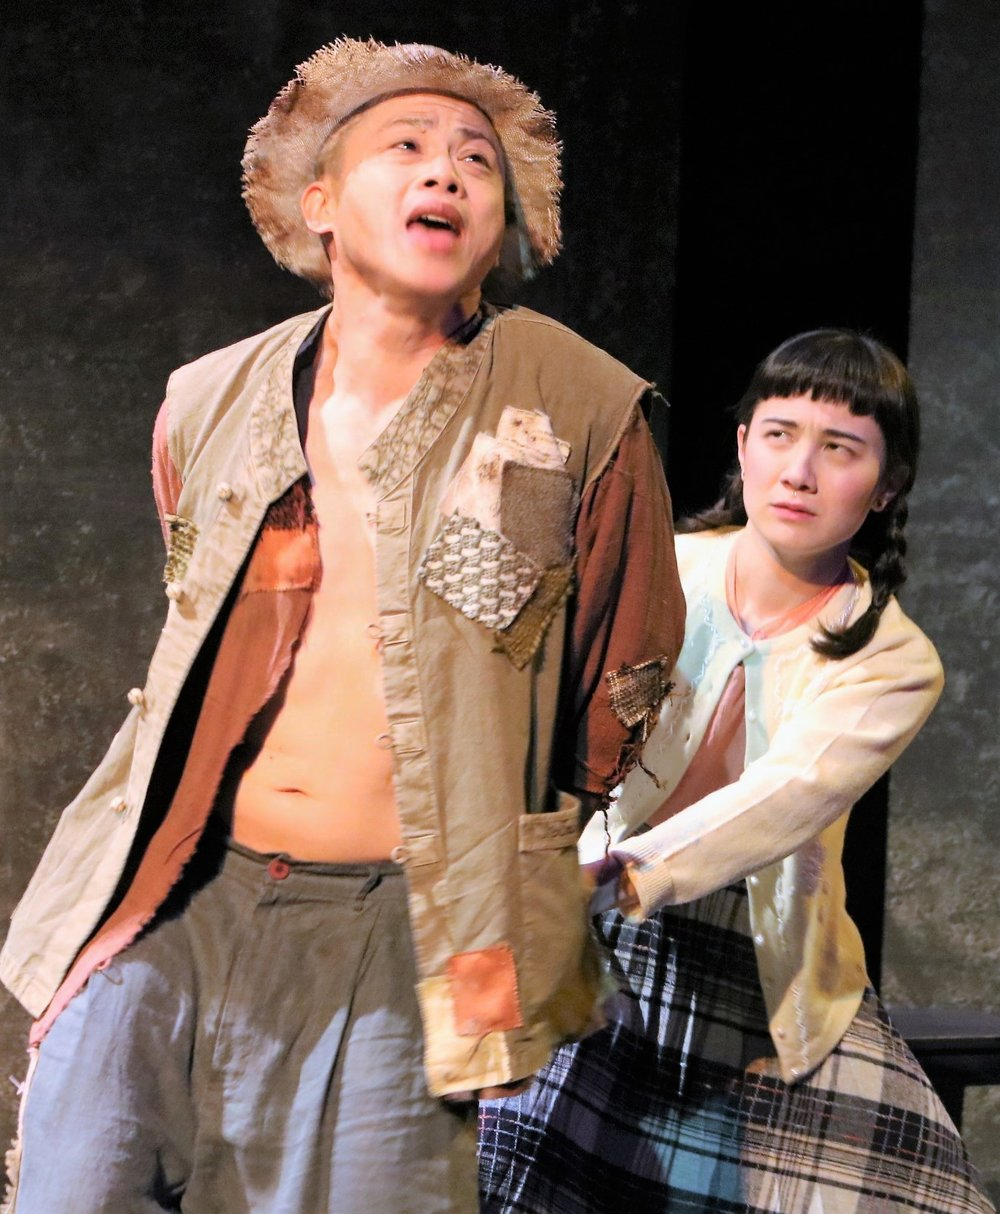 Briana Sakamoto (right) with Doan as the Blind Man.